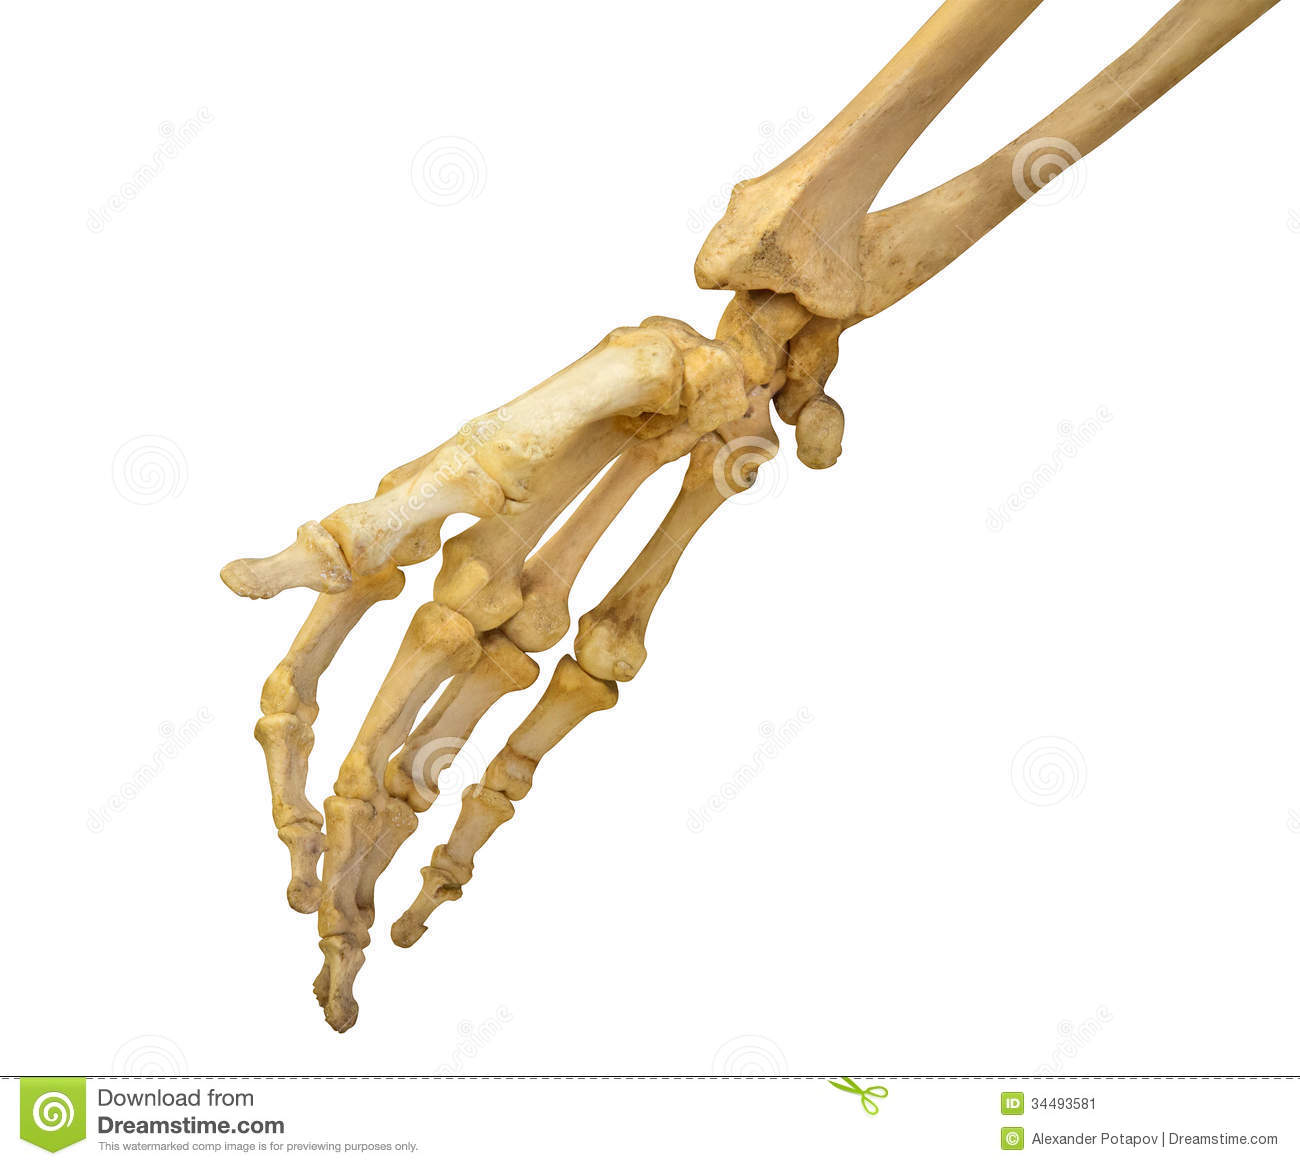 Human hand skeleton on white